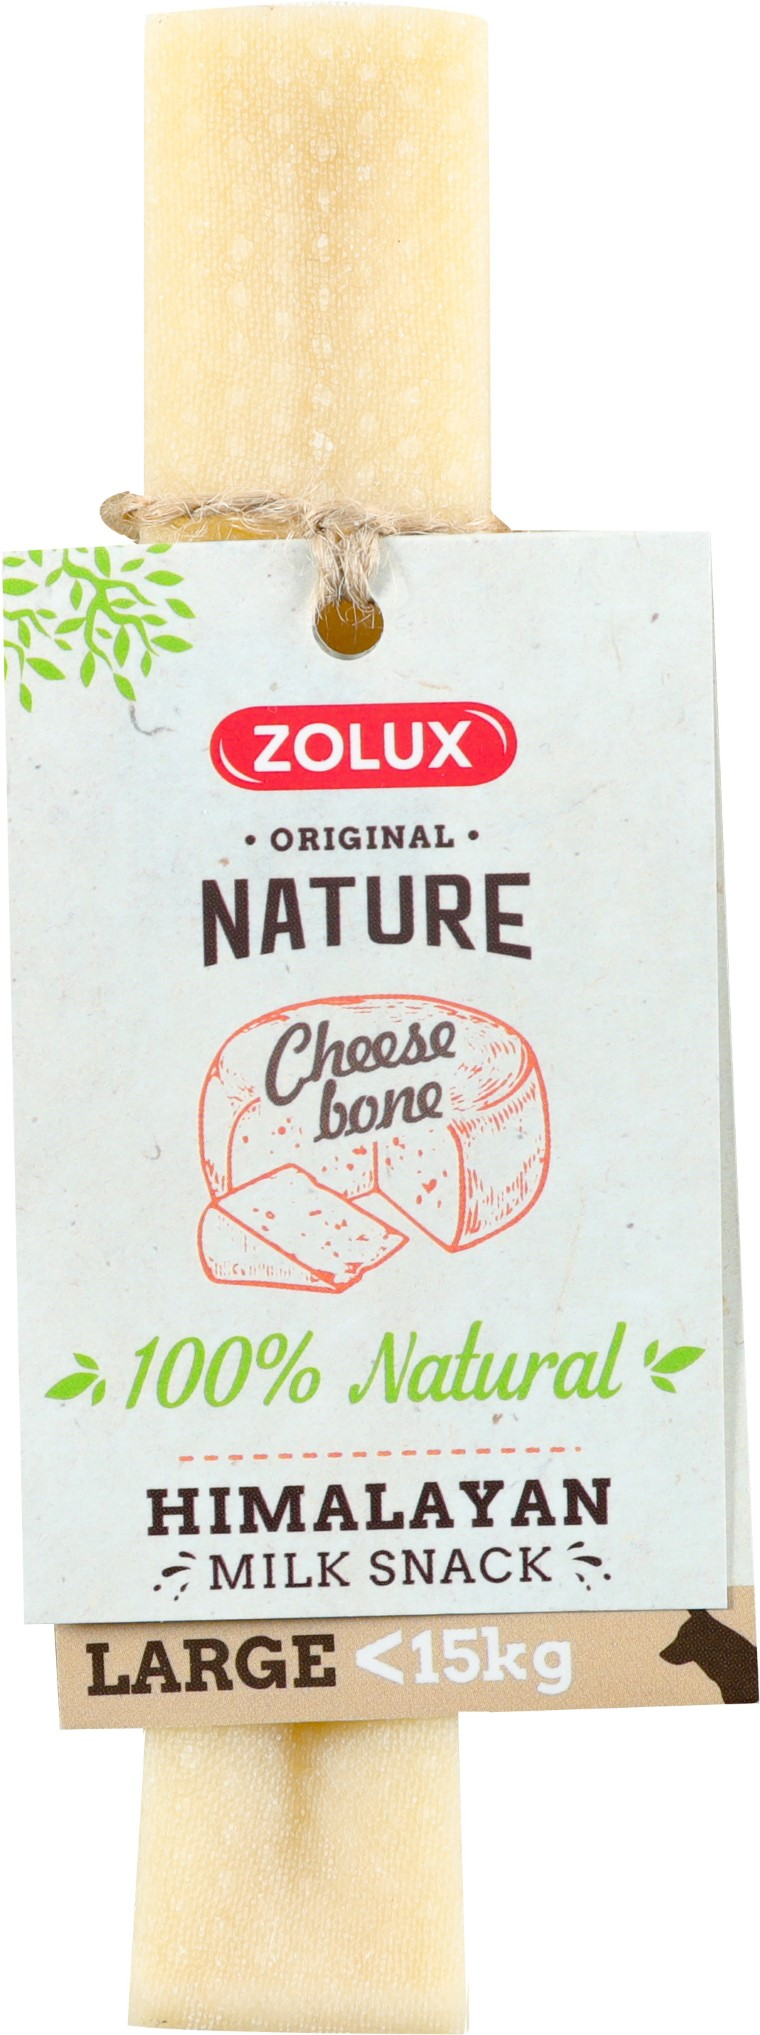 Friandise chien - Zolux cheese bone Taille L 716369